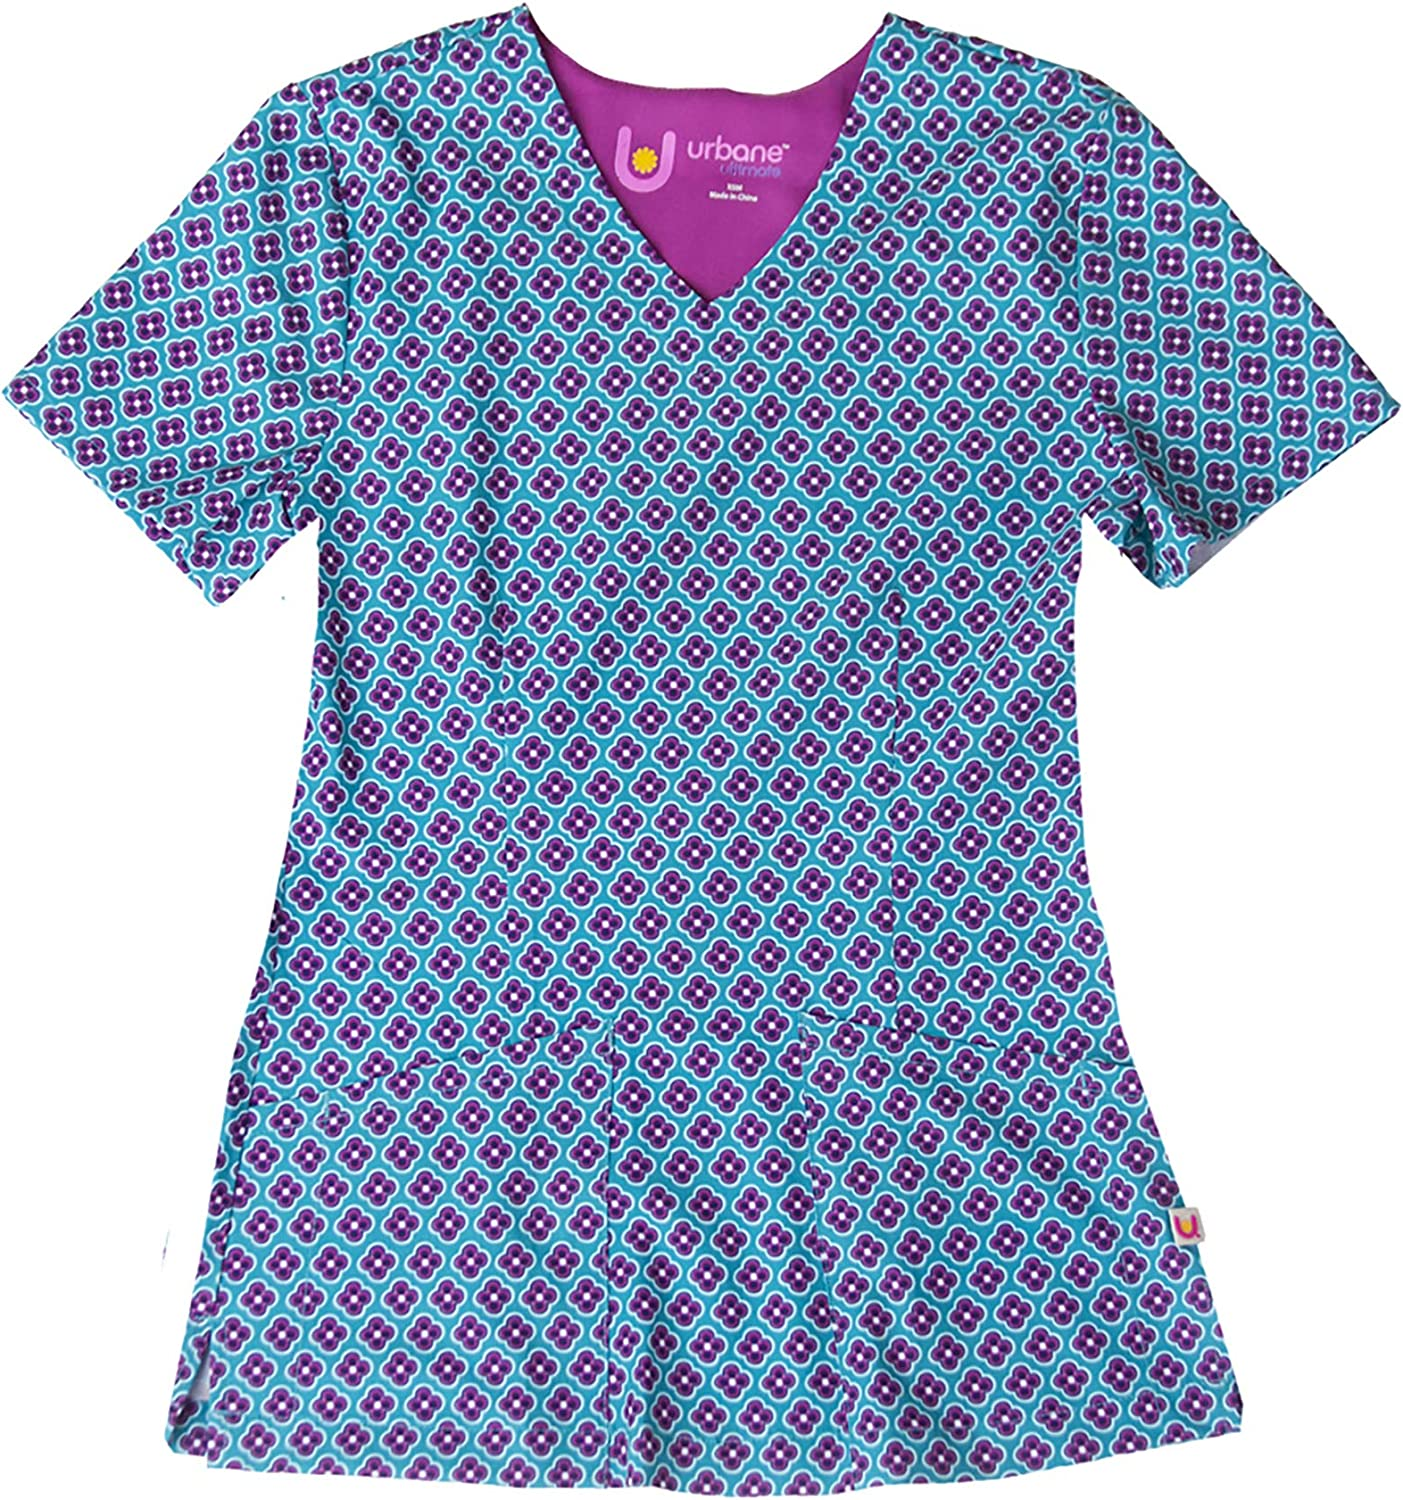 Urbane Women's V-Neck Stretch Scrub All items in the store Top Teal Round About OFFicial site M